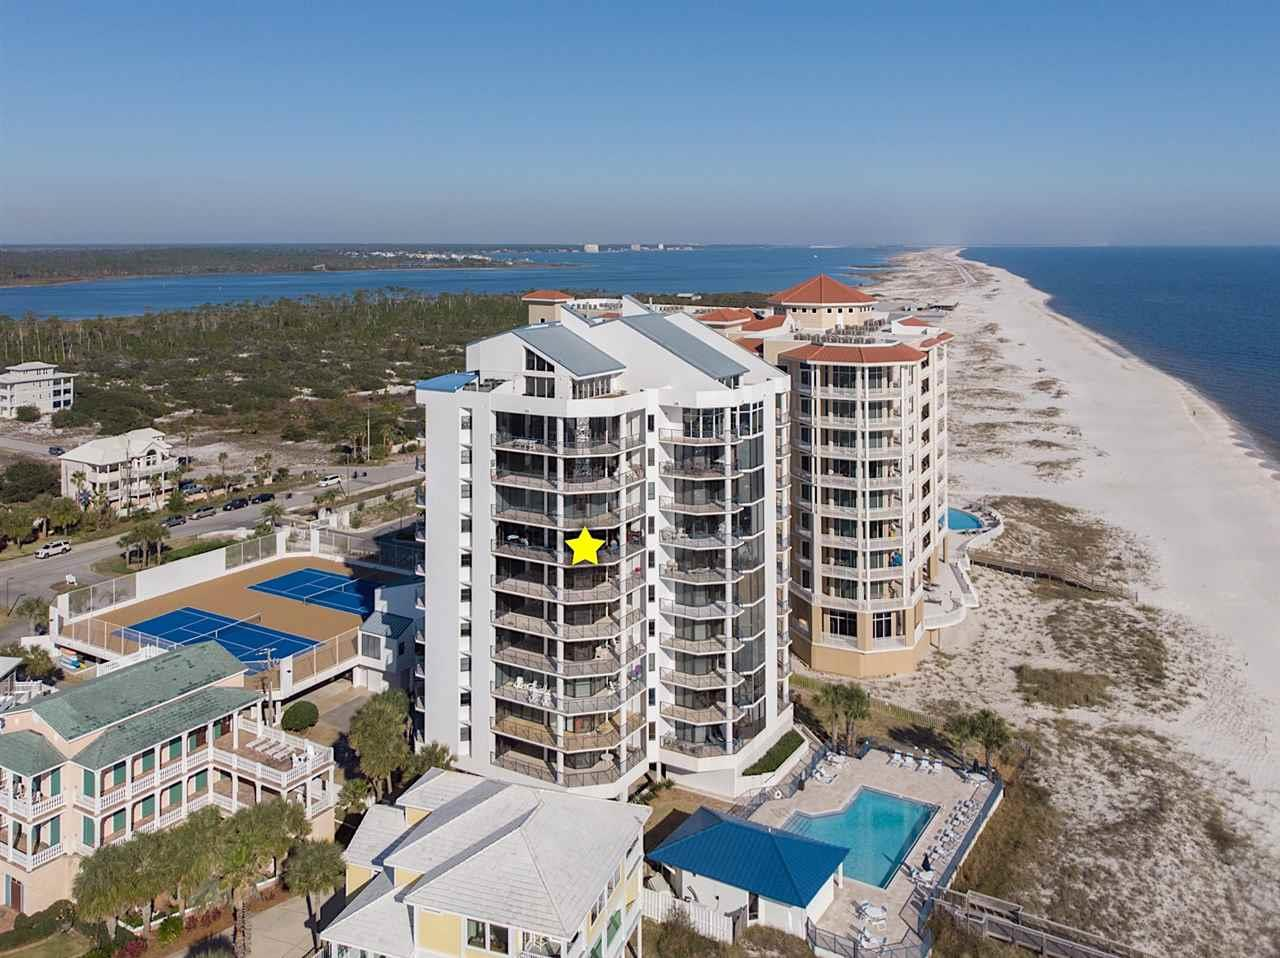 13335 JOHNSON BEACH RD PERDIDO KEY, FL 32507 547910